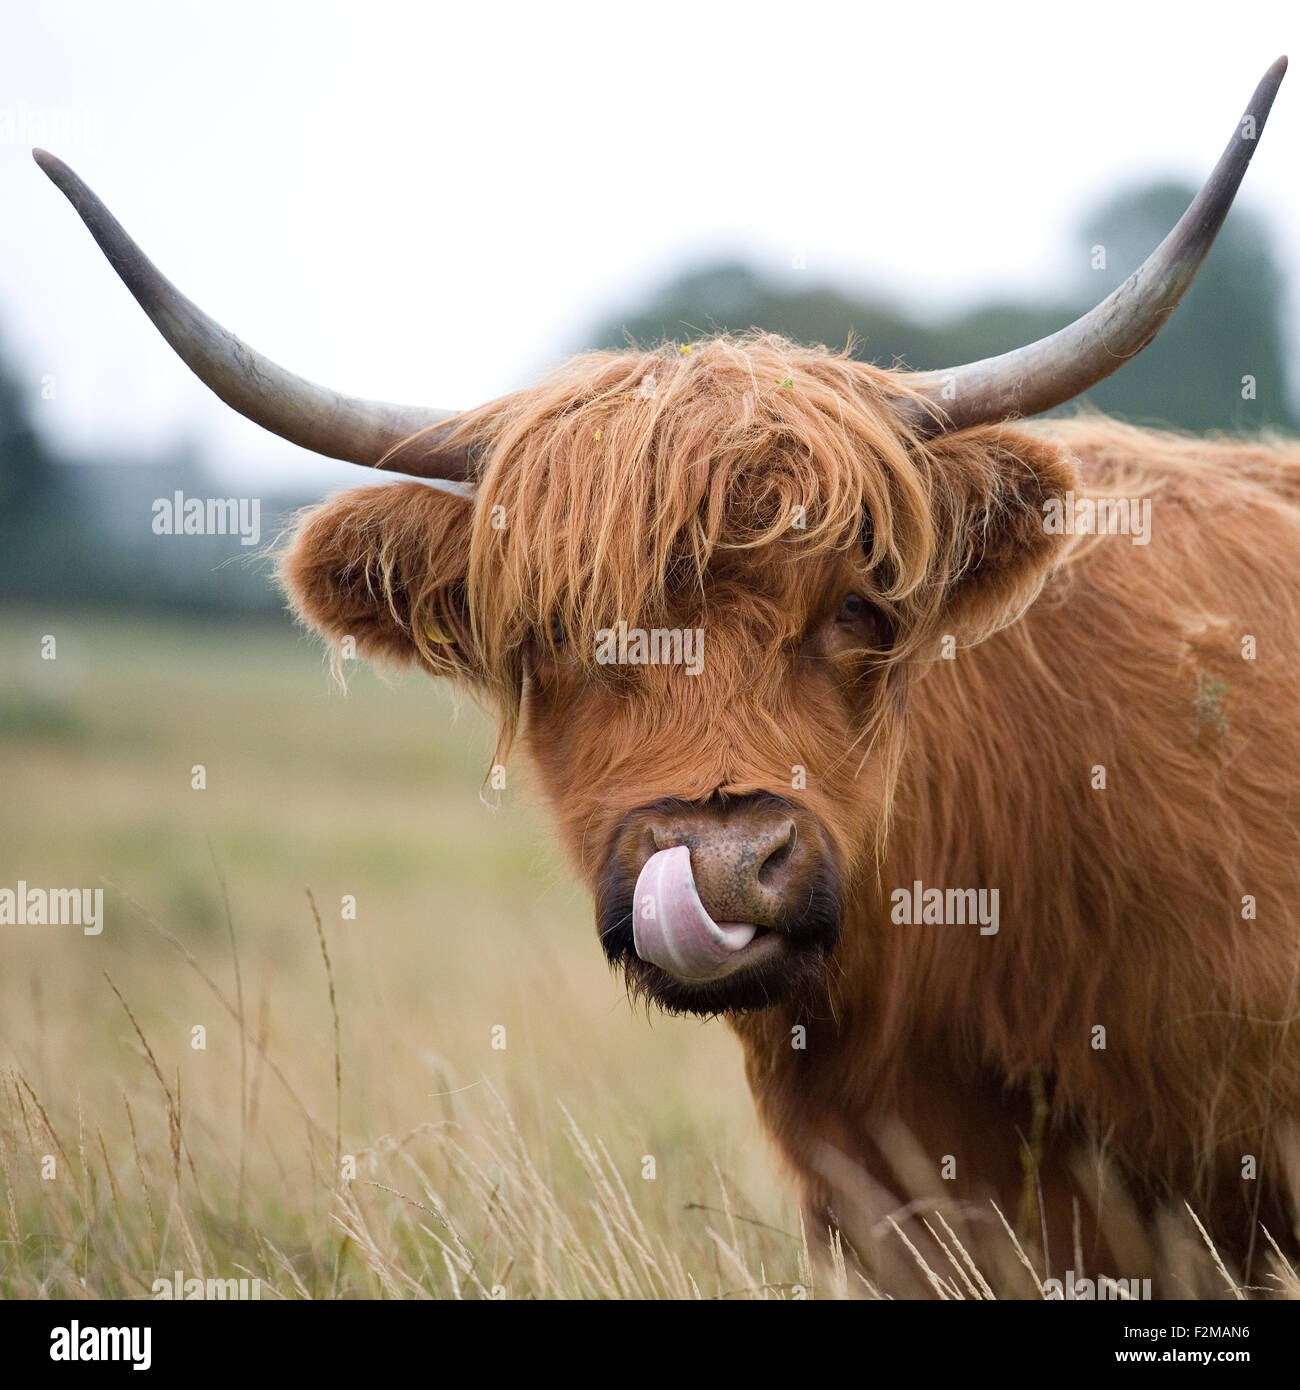 highland cow licking nose - Stock Image